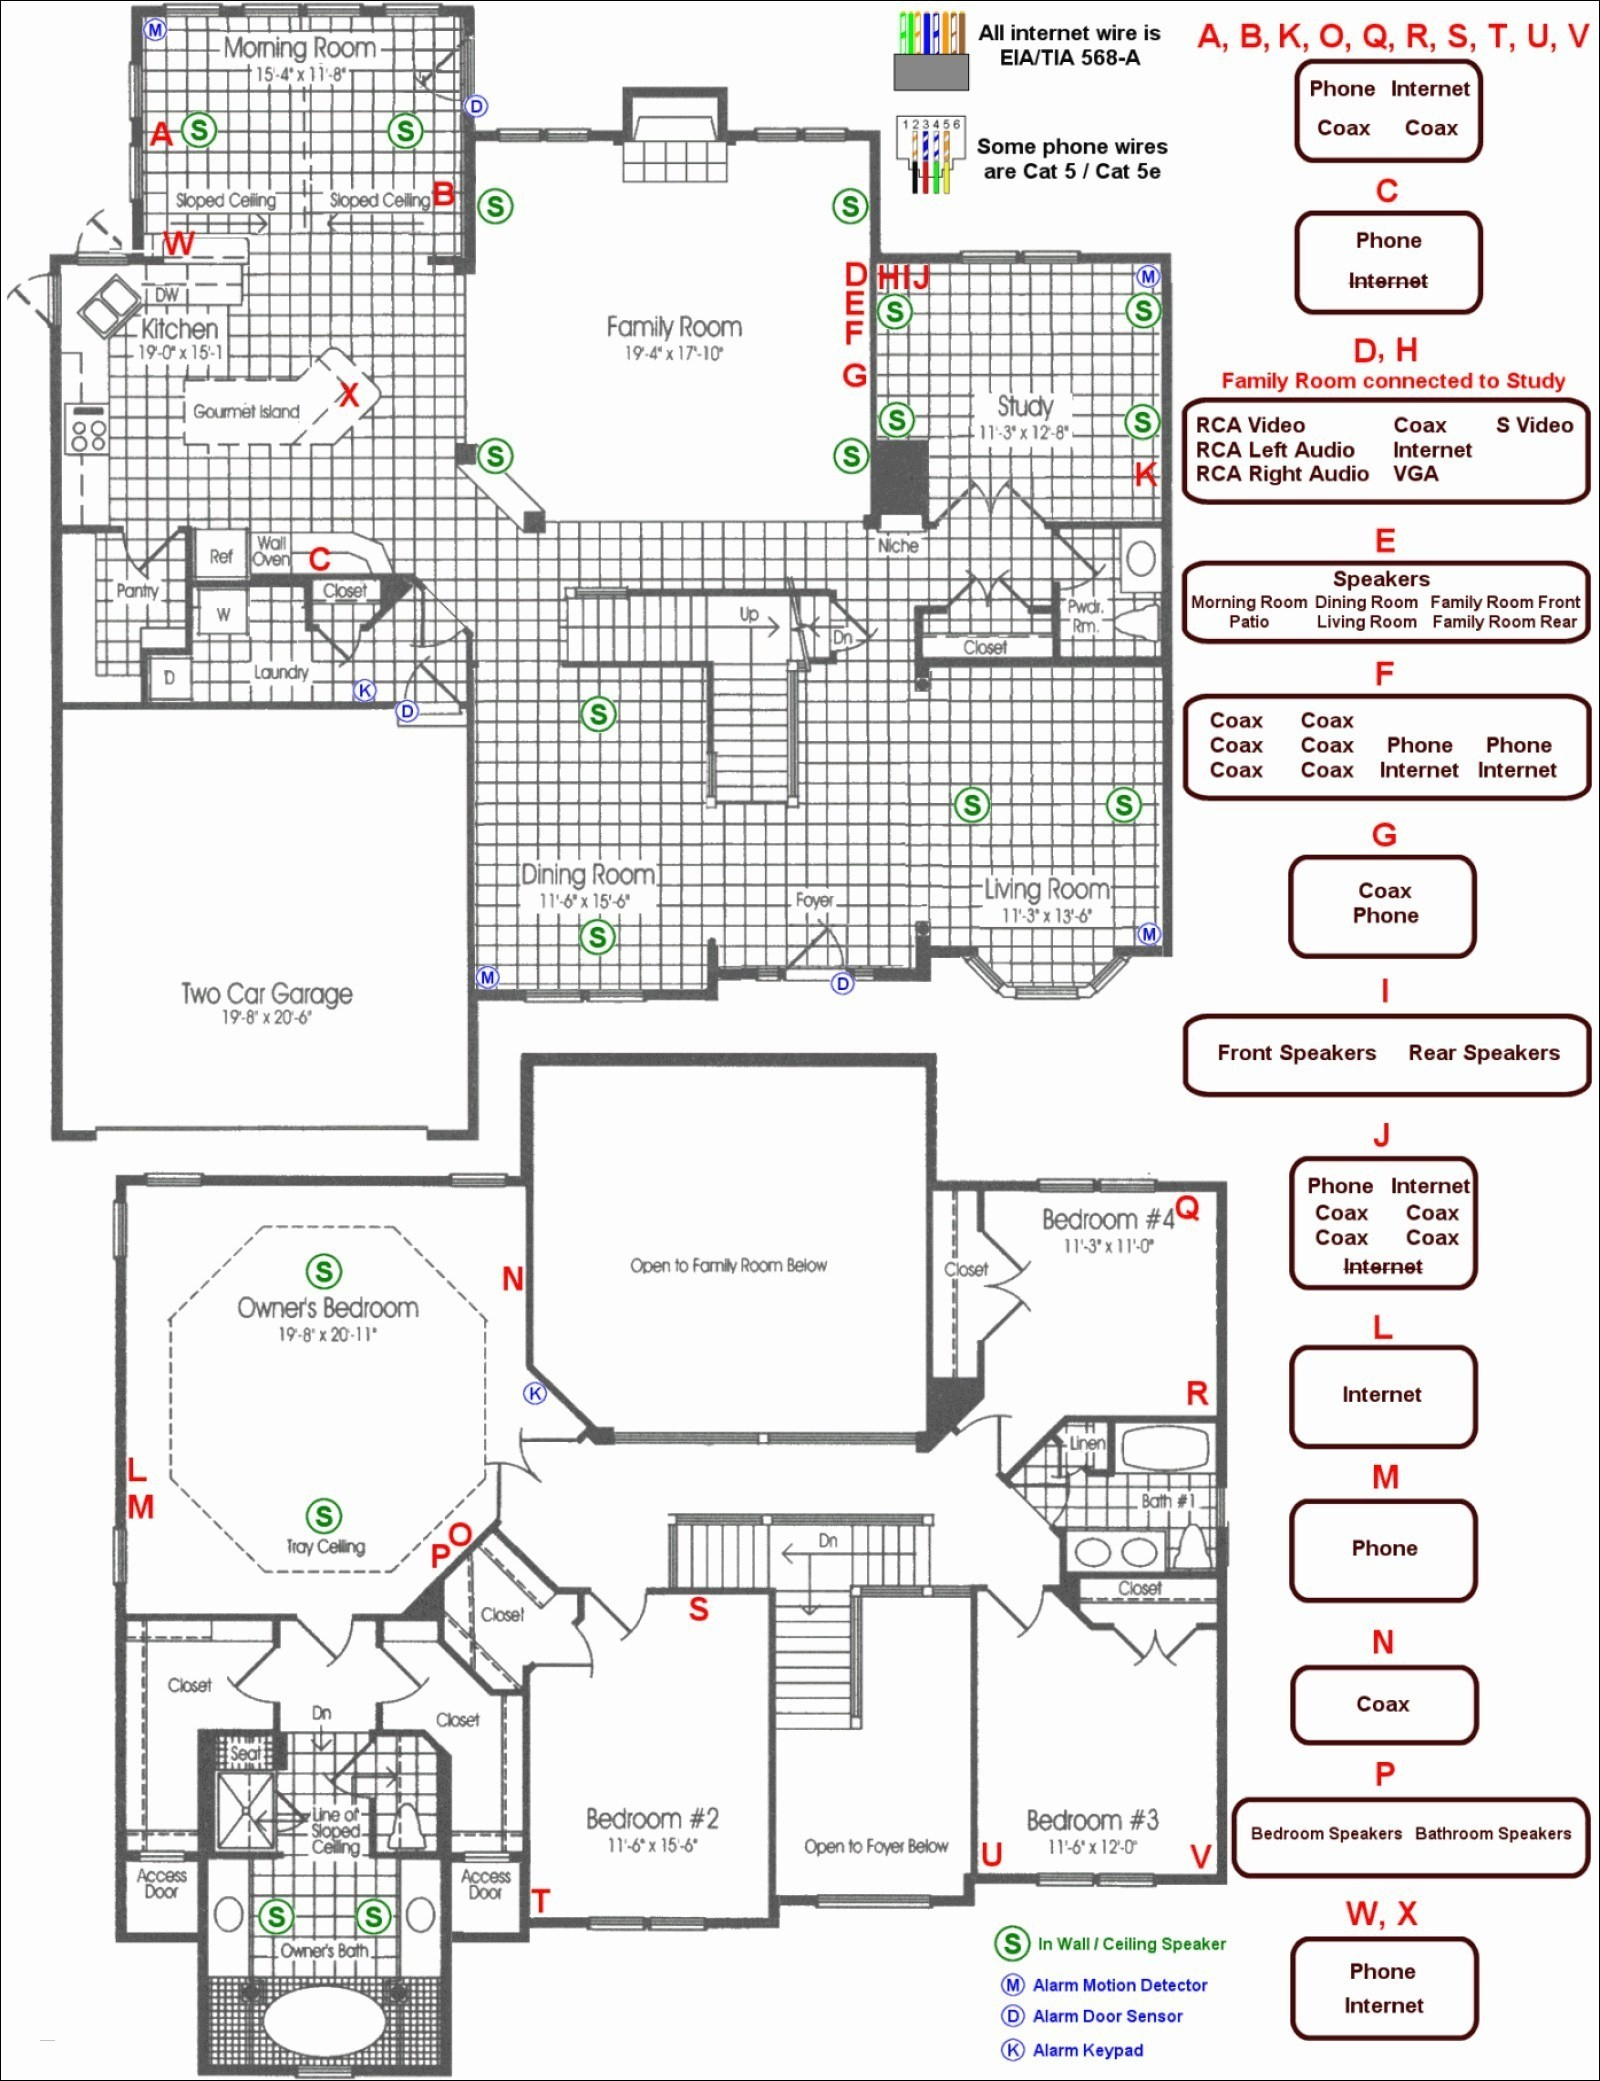 Electrical House Wiring Diagram Software Sample - Home Wiring Diagram Software